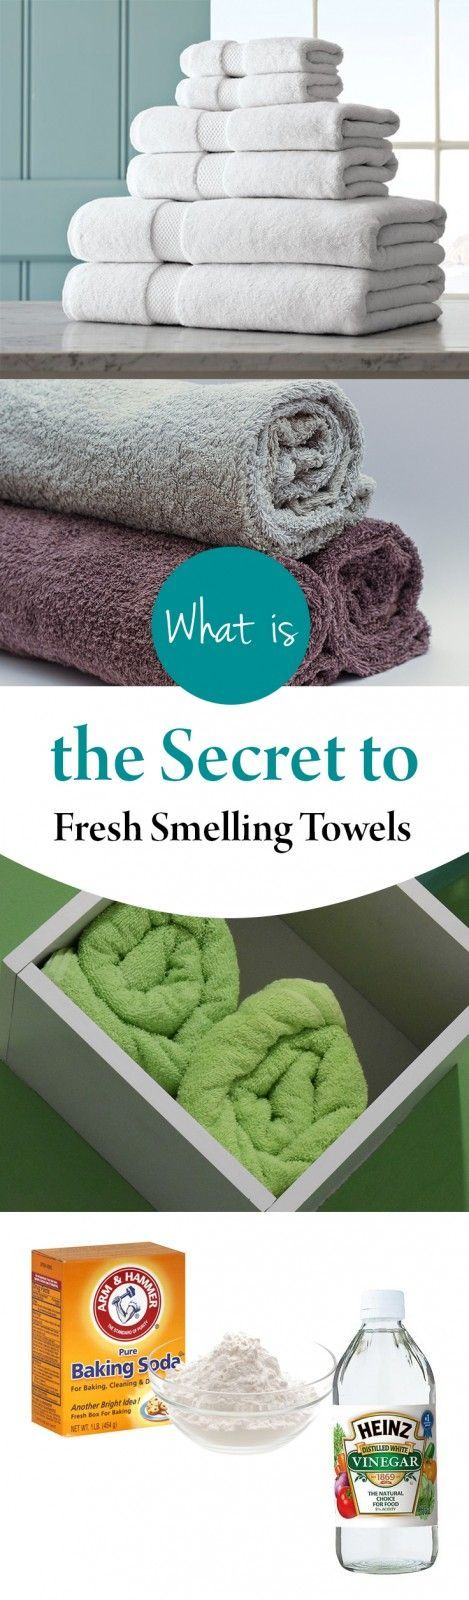 There are lots of reasons as to why your towels could be smelling. It could be because the water is hard, the washer has a mold or mildew problem, or the towels are just old. Whatever the problem, there IS a solution! Here's what to do in order to get your towels from... #cleaning #home #hometips